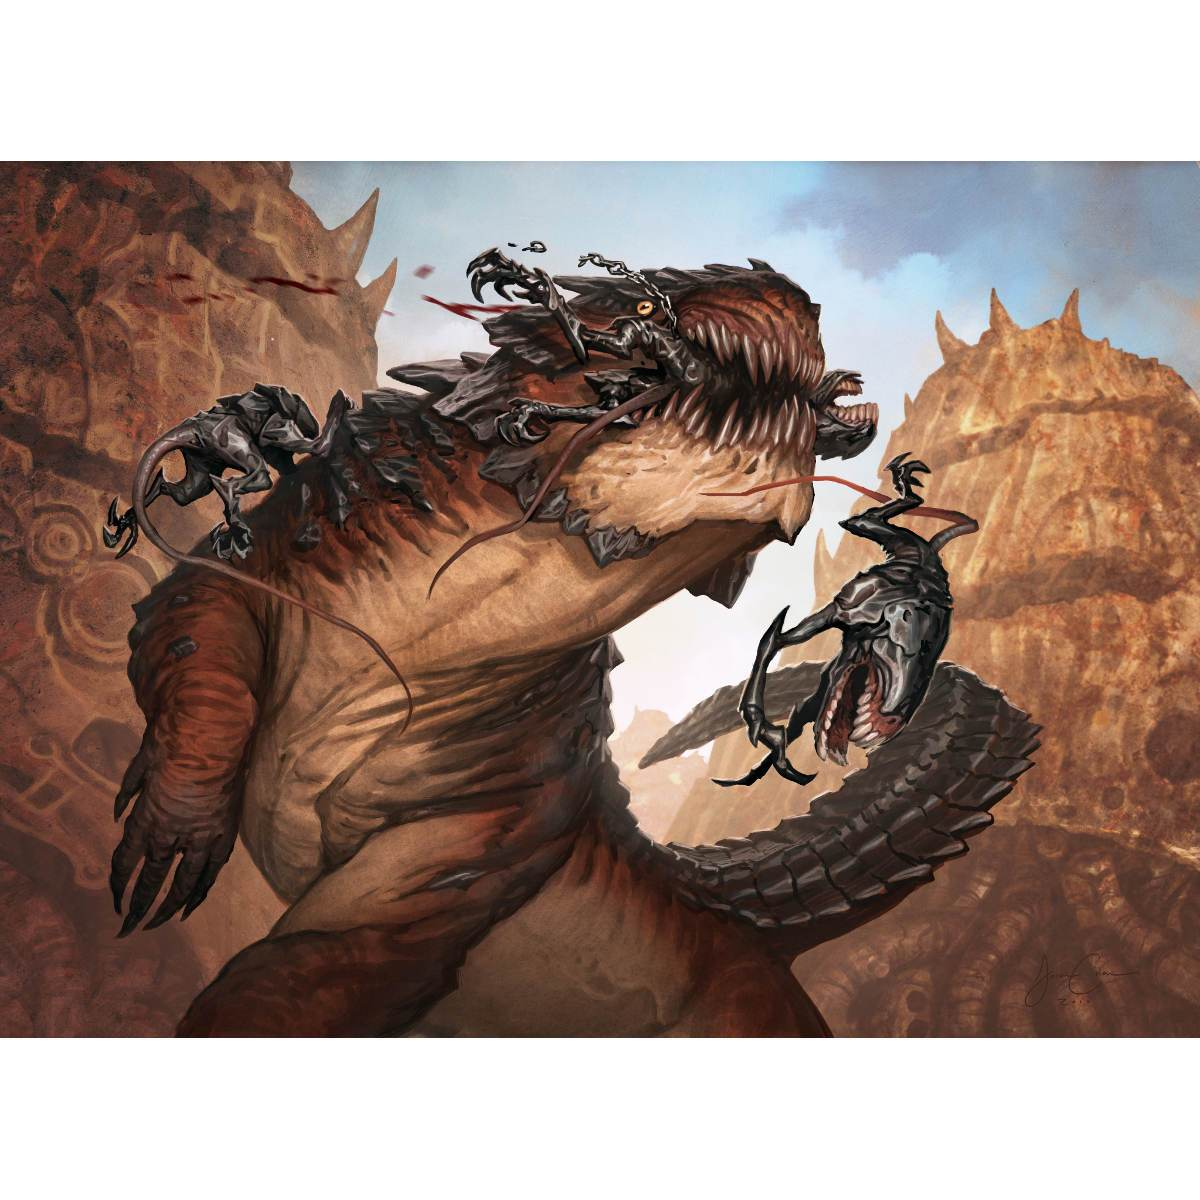 Gnathosaur Print - Print - Original Magic Art - Accessories for Magic the Gathering and other card games